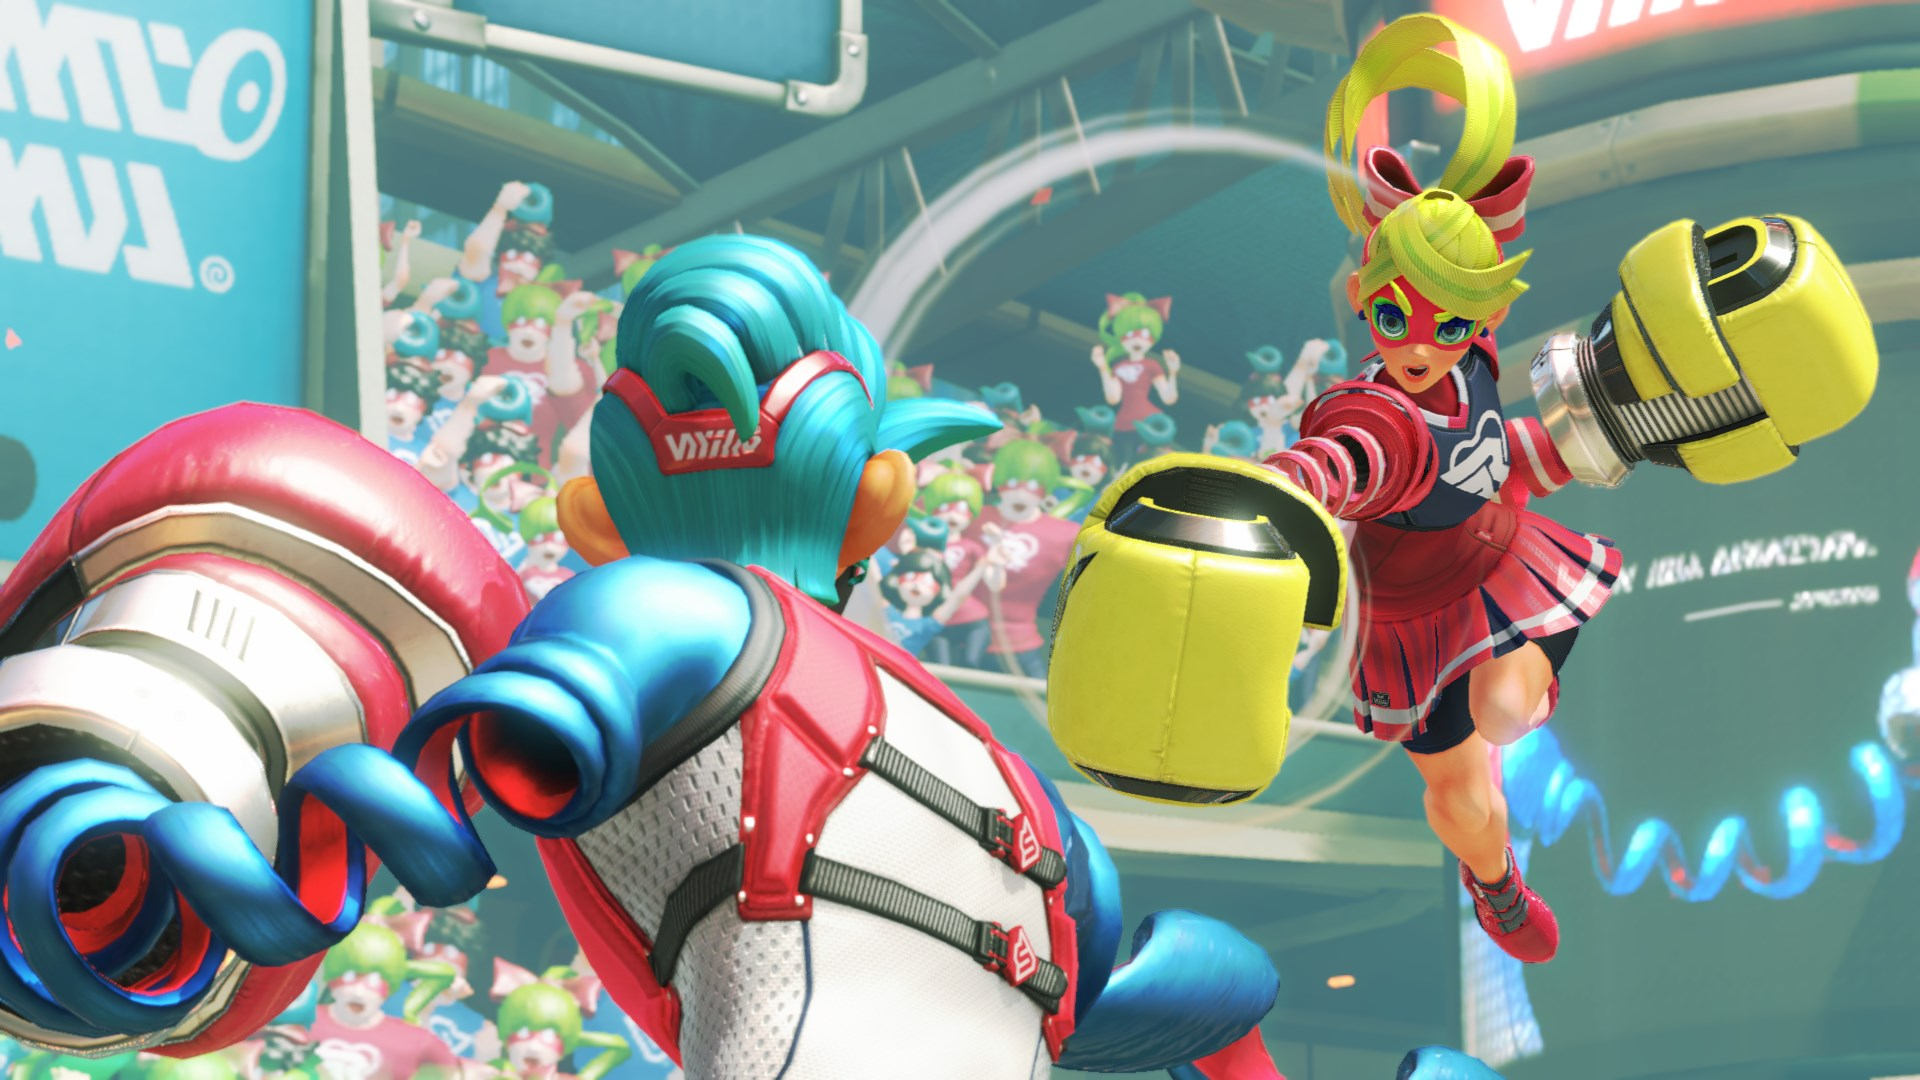 Arms: Nintendo Switch